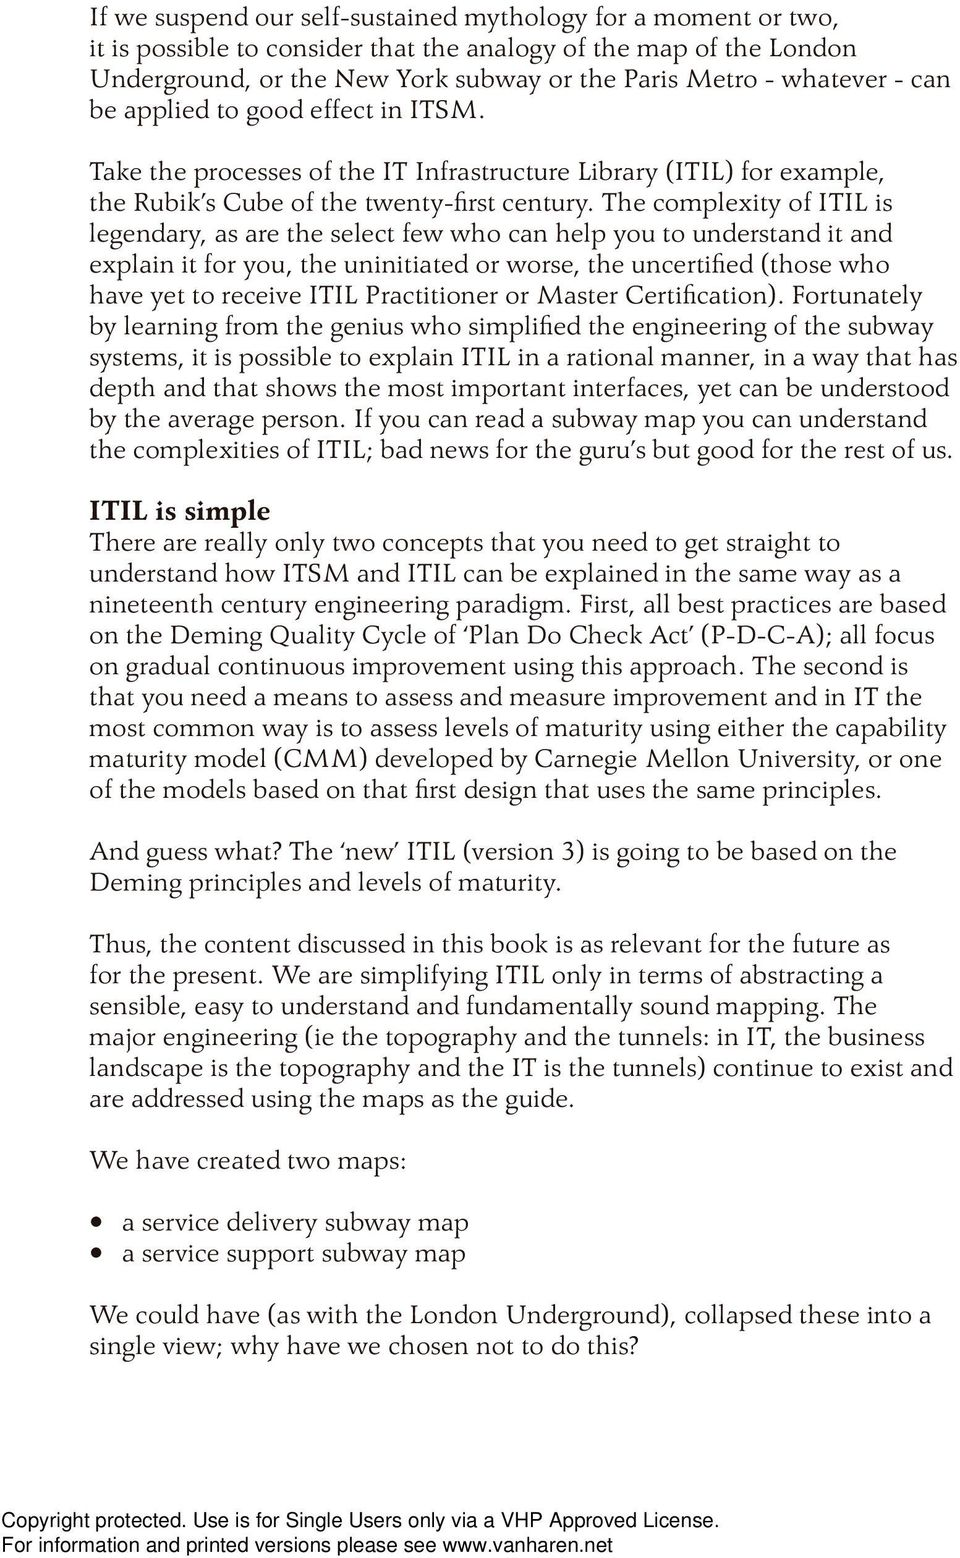 The complexity of ITIL is legendary, as are the select few who can help you to understand it and explain it for you, the uninitiated or worse, the uncertifi ed (those who have yet to receive ITIL